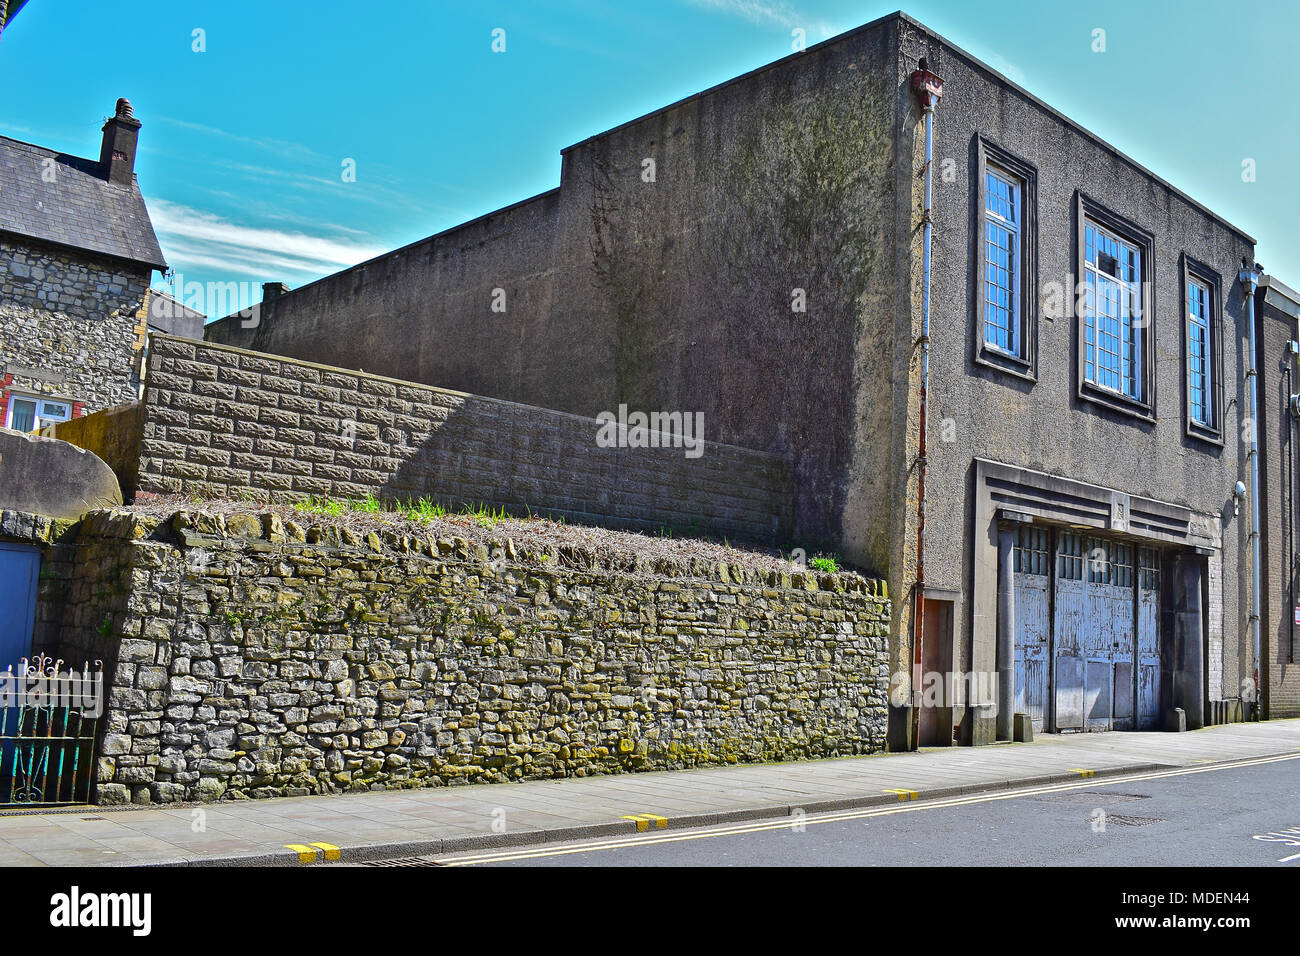 The old fire station in Bridgend S.Wales. It has remained empty for many years and is a Grade II Listed building. Stock Photo